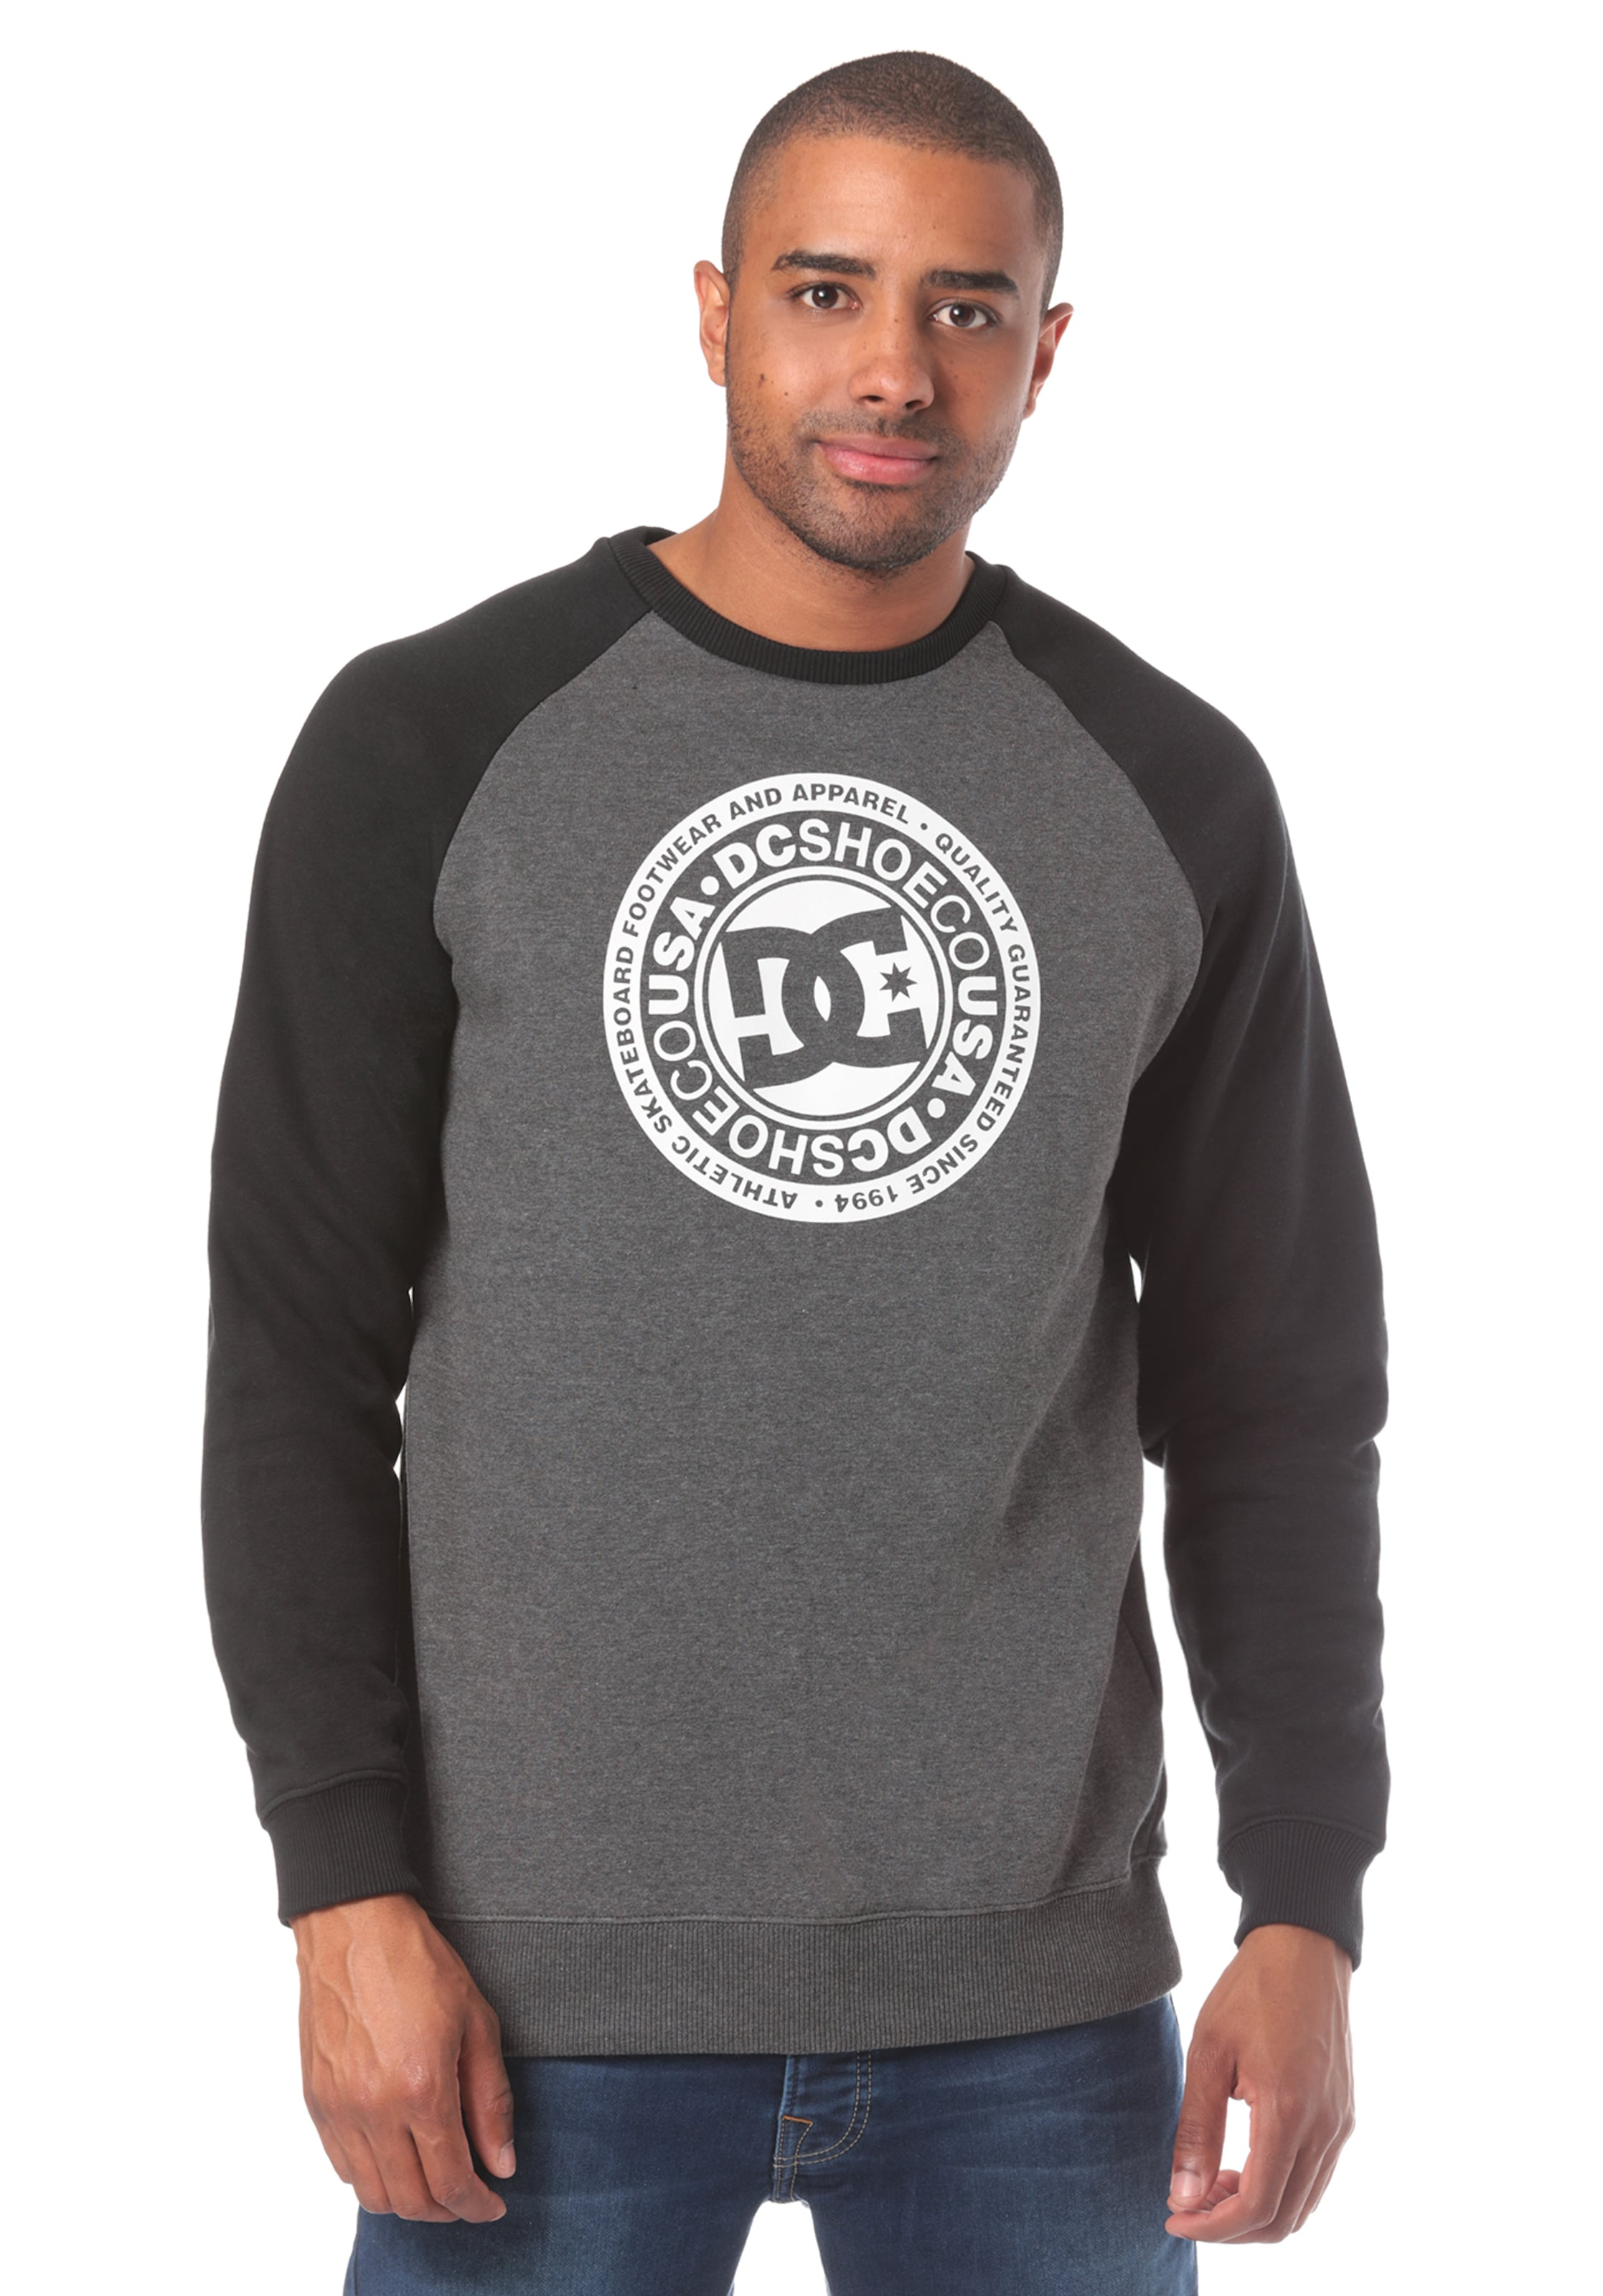 In Dc Circle Star Crew Shoes GrauAnthrazit Sweatshirt 5j34RqcLA